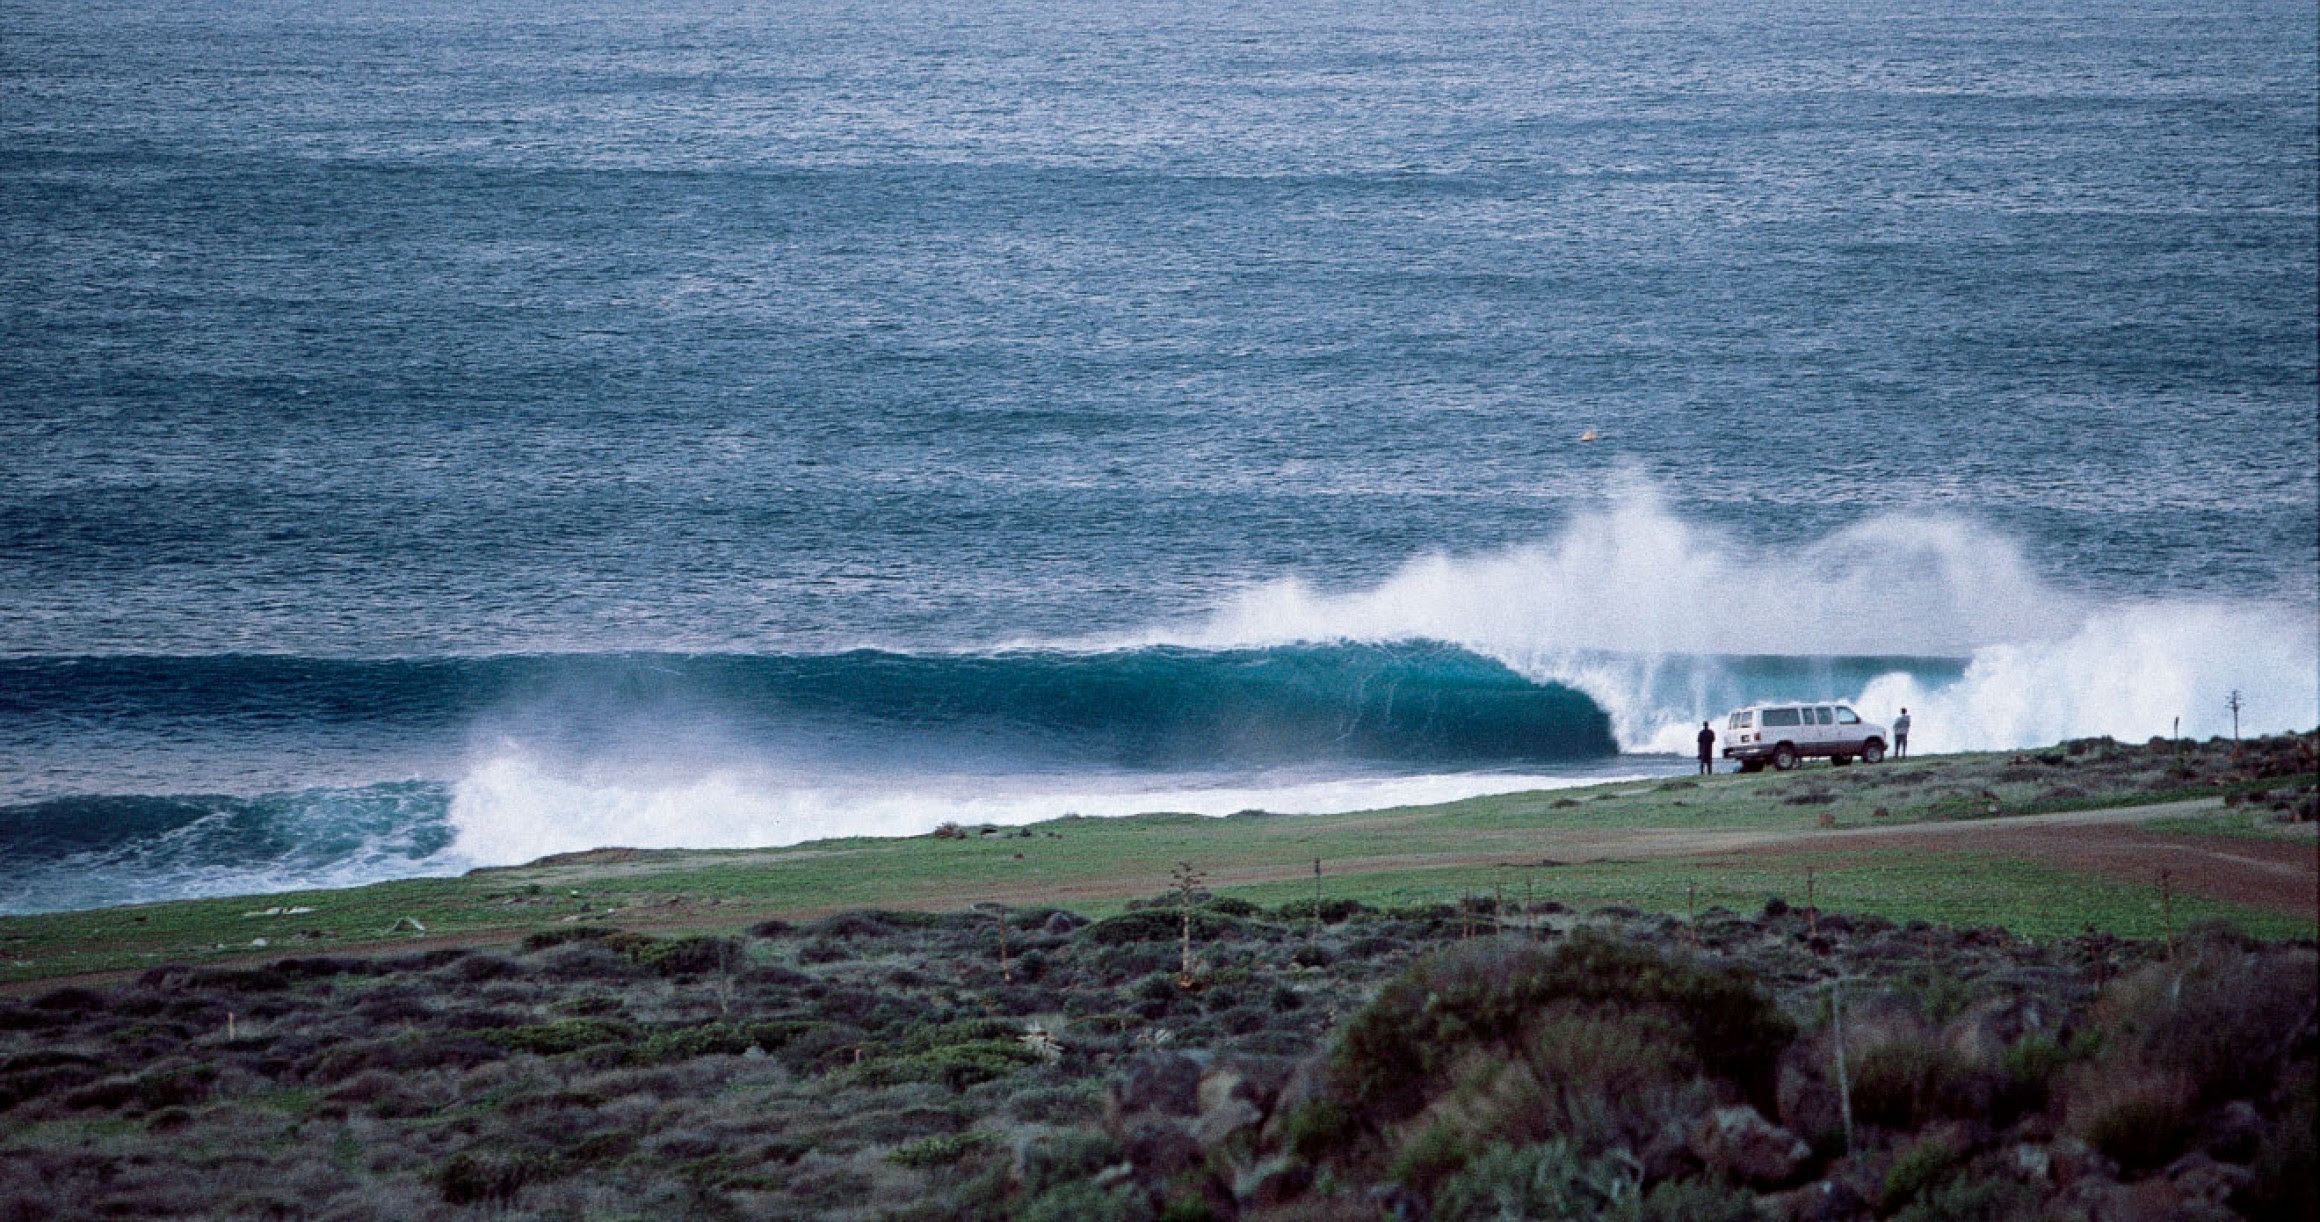 Insane Waves That Are Now Extinct